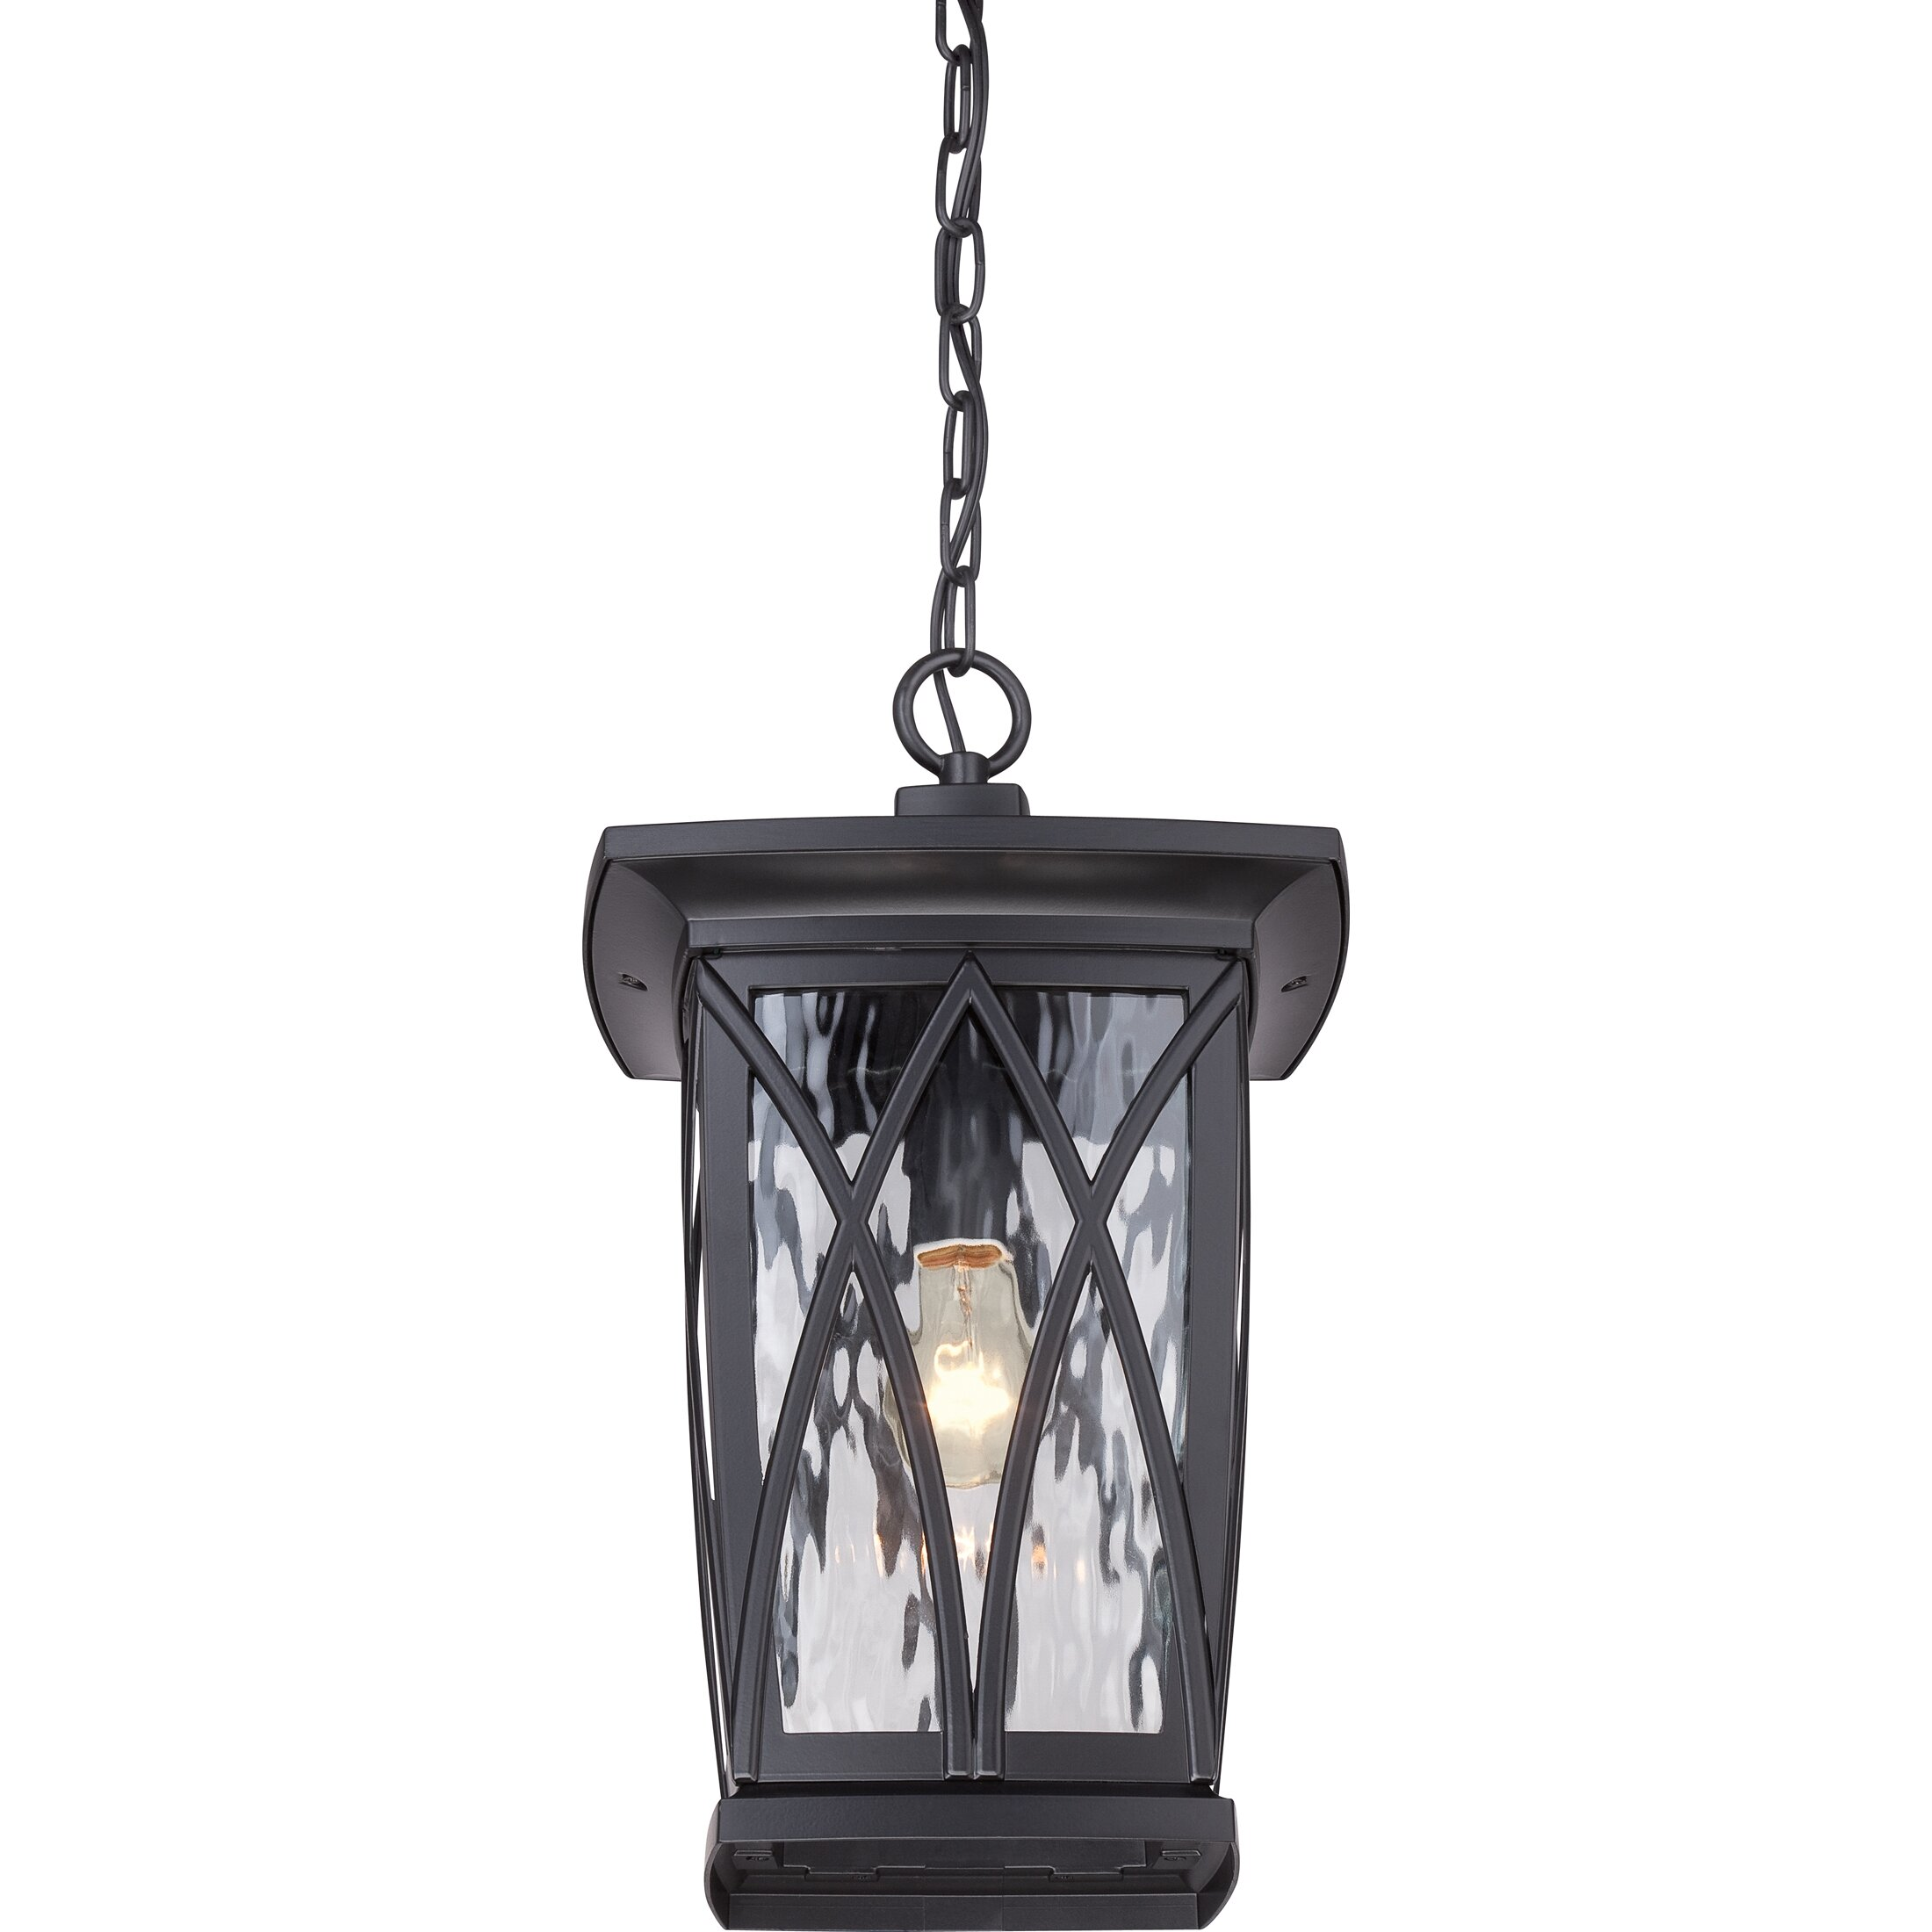 Outdoor Lantern Pendant Lighting : Quoizel grover light outdoor hanging lantern wayfair